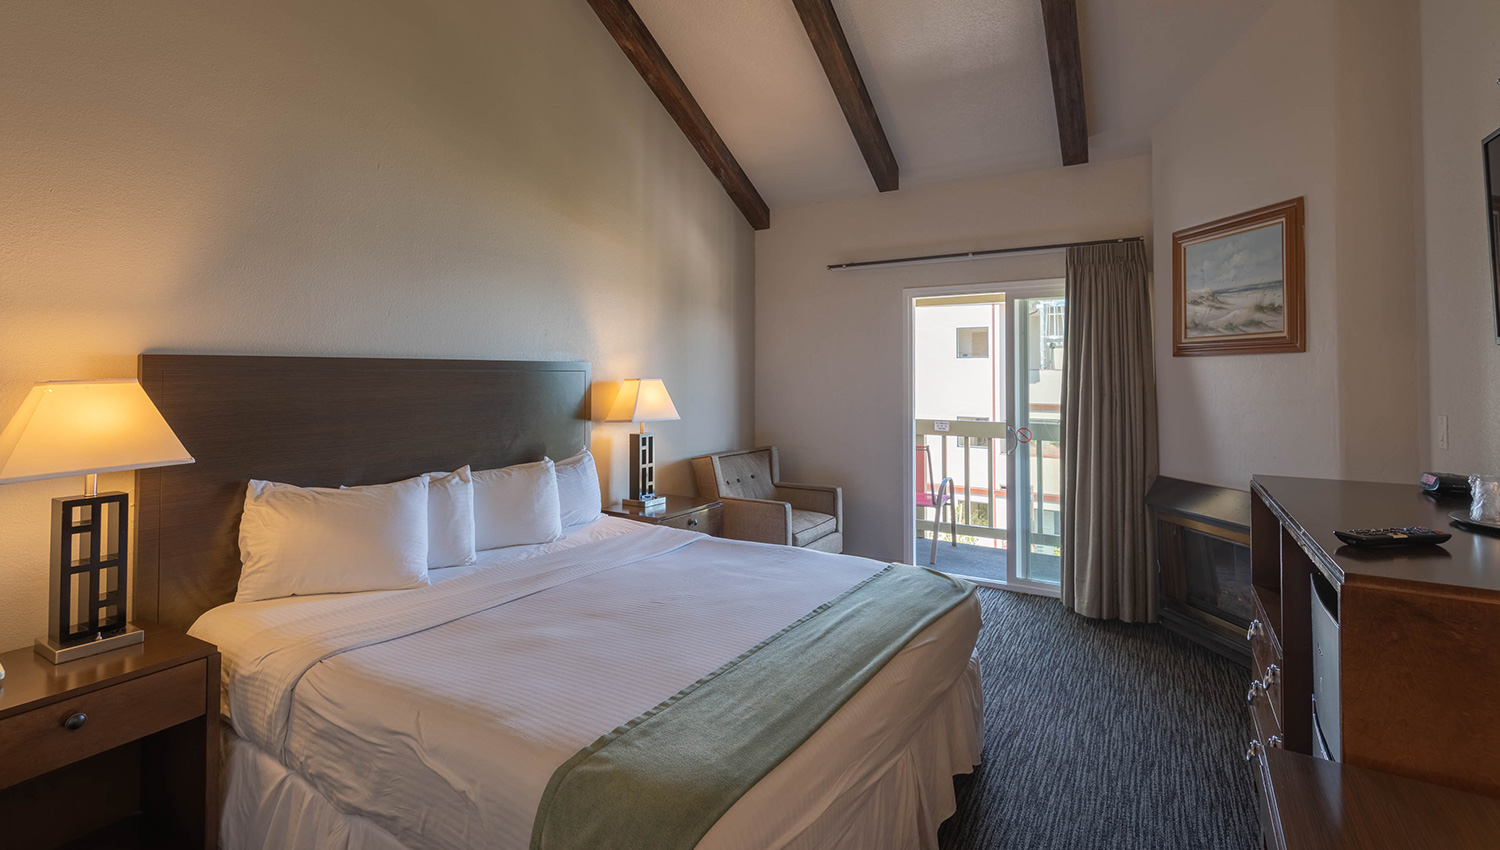 Our spacious Monterey, CA accommodations and thoughtful amenities await